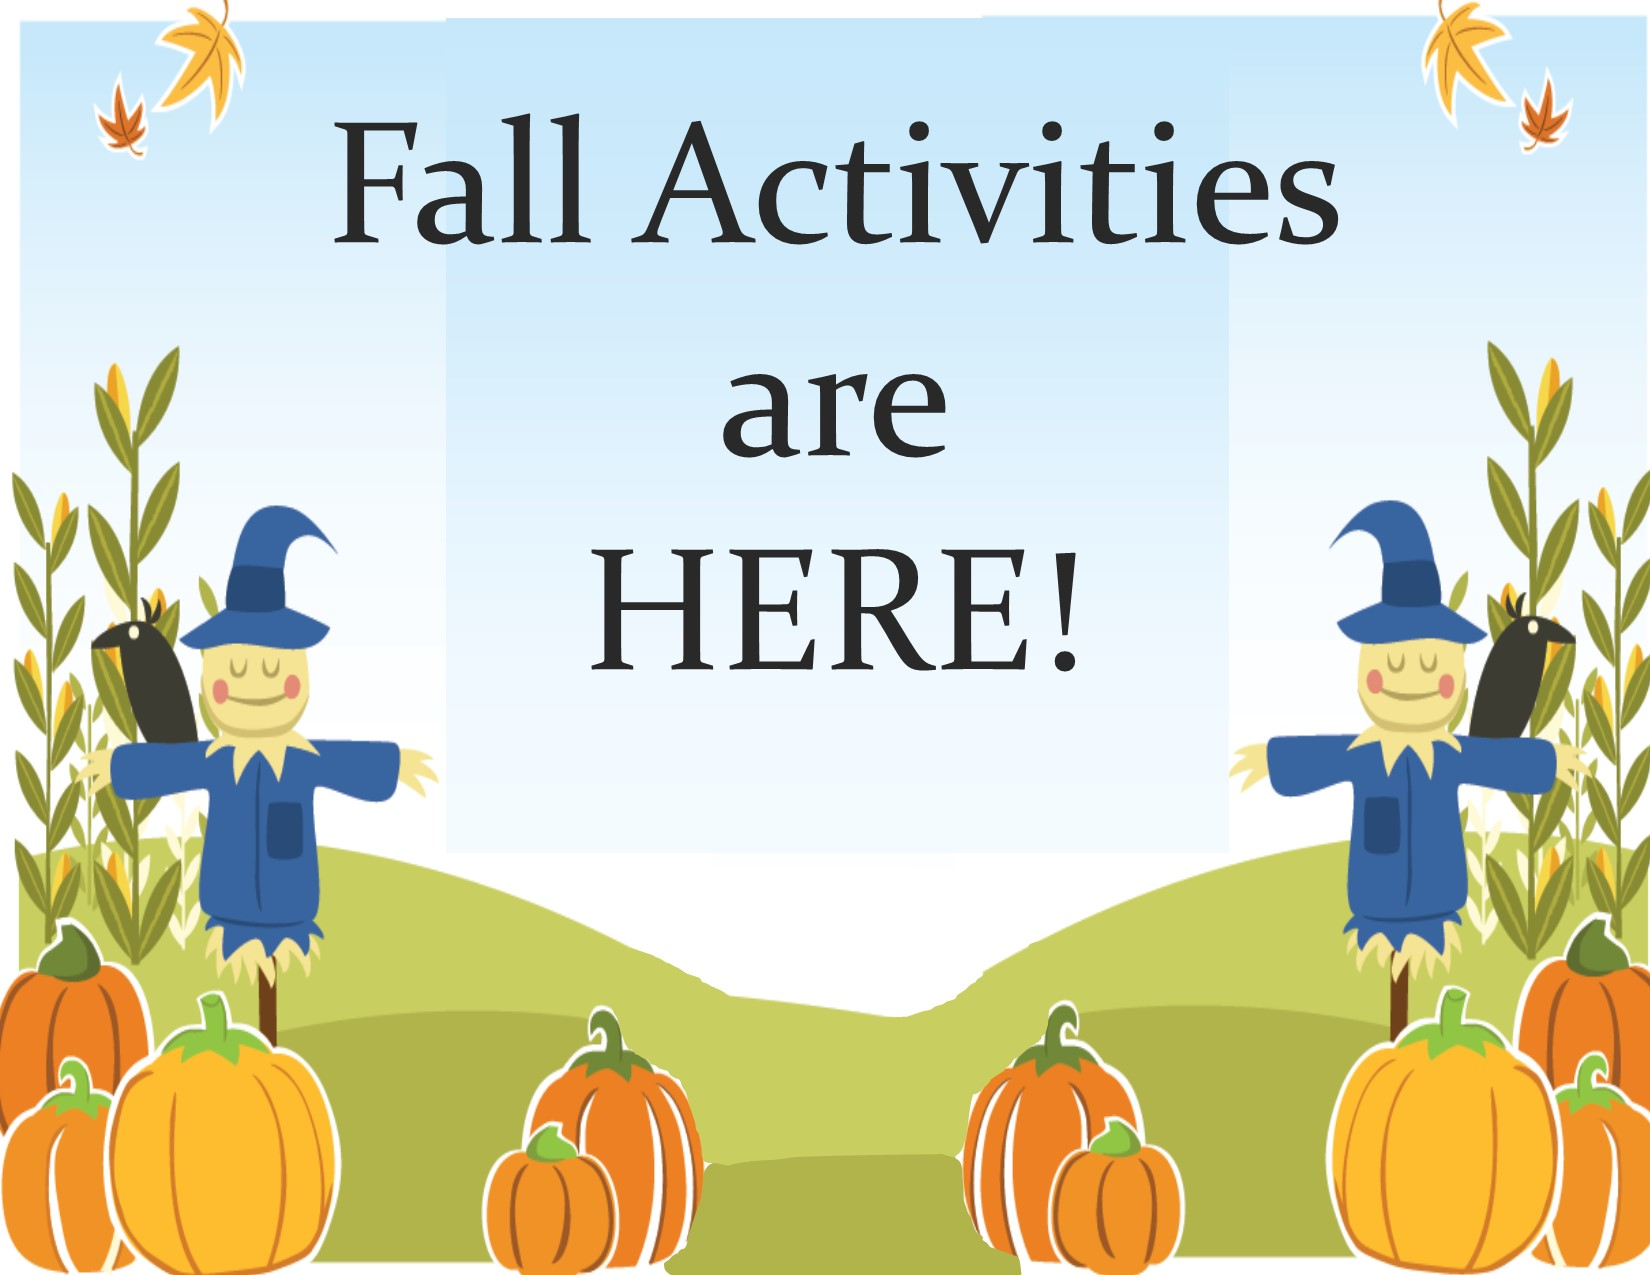 fall activities are here - letter size